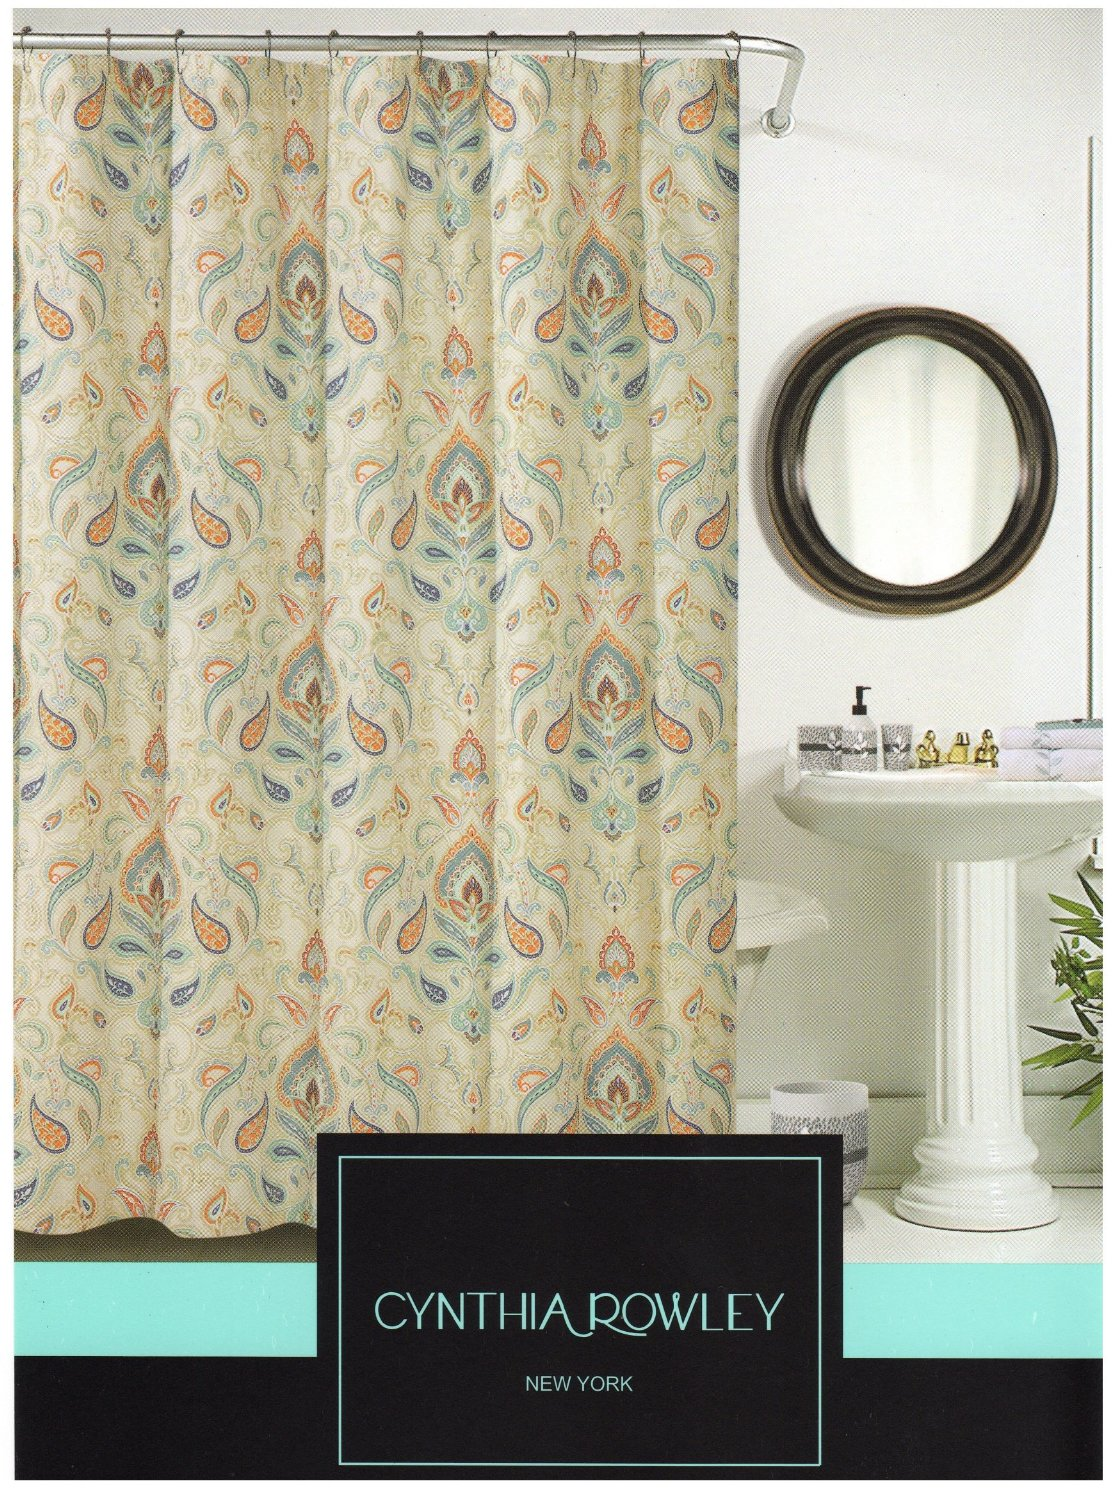 Cynthia Rowley Shower Curtain - Ischia Paisley Fabric Shower Curtain In Shades of Burnt Orange with Seafoam Green, Orange And Grey, Aqua, White and Grey, also Beige